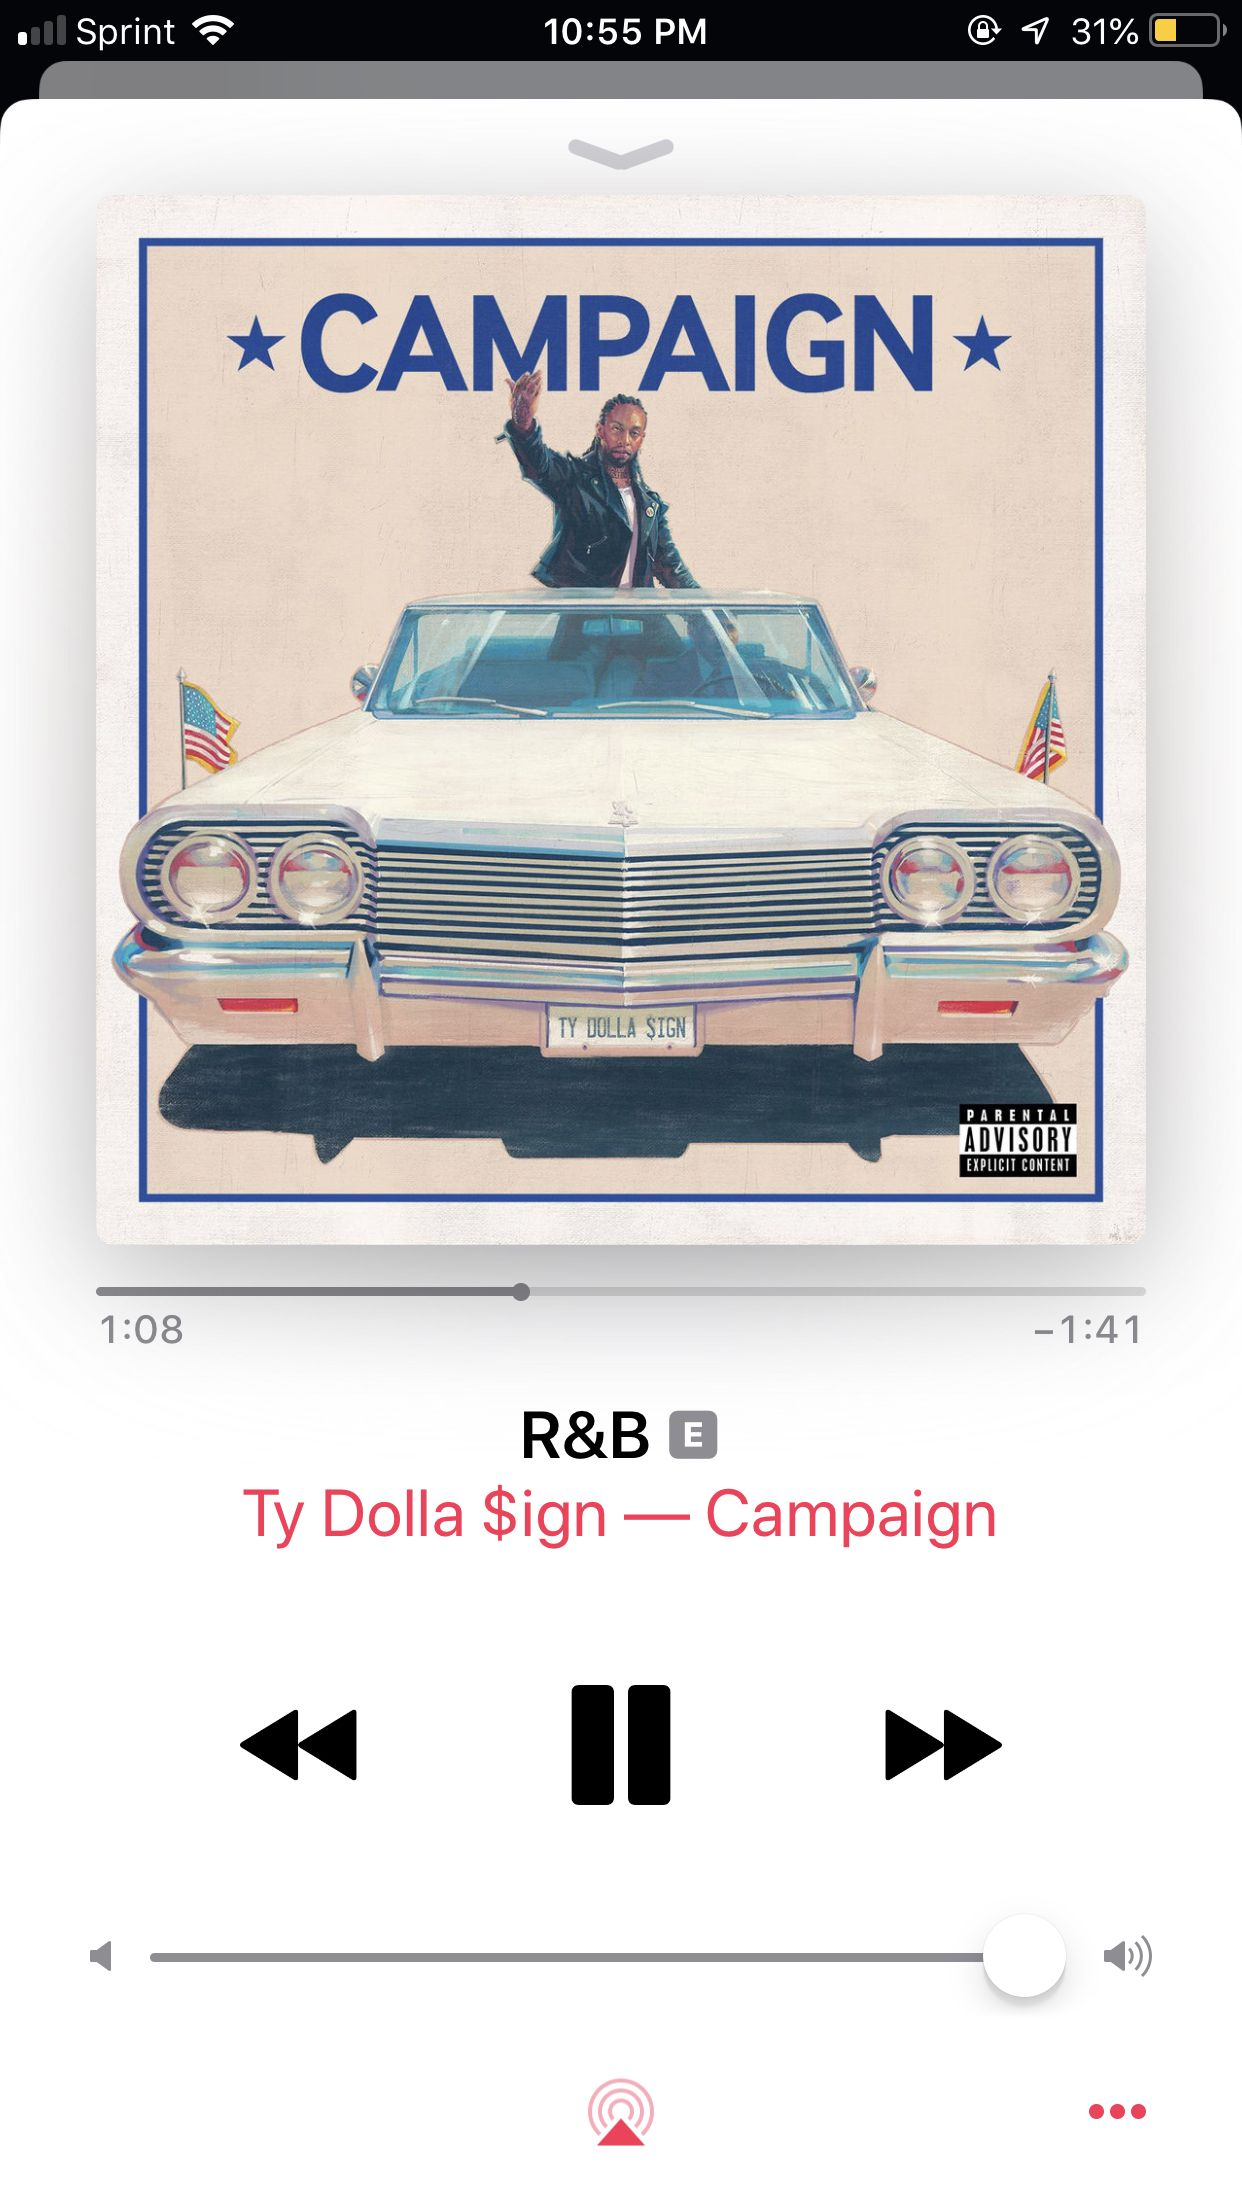 Ty Dolla $ign  R&B🤤Music for your boards💦Playlist ideas💡Song